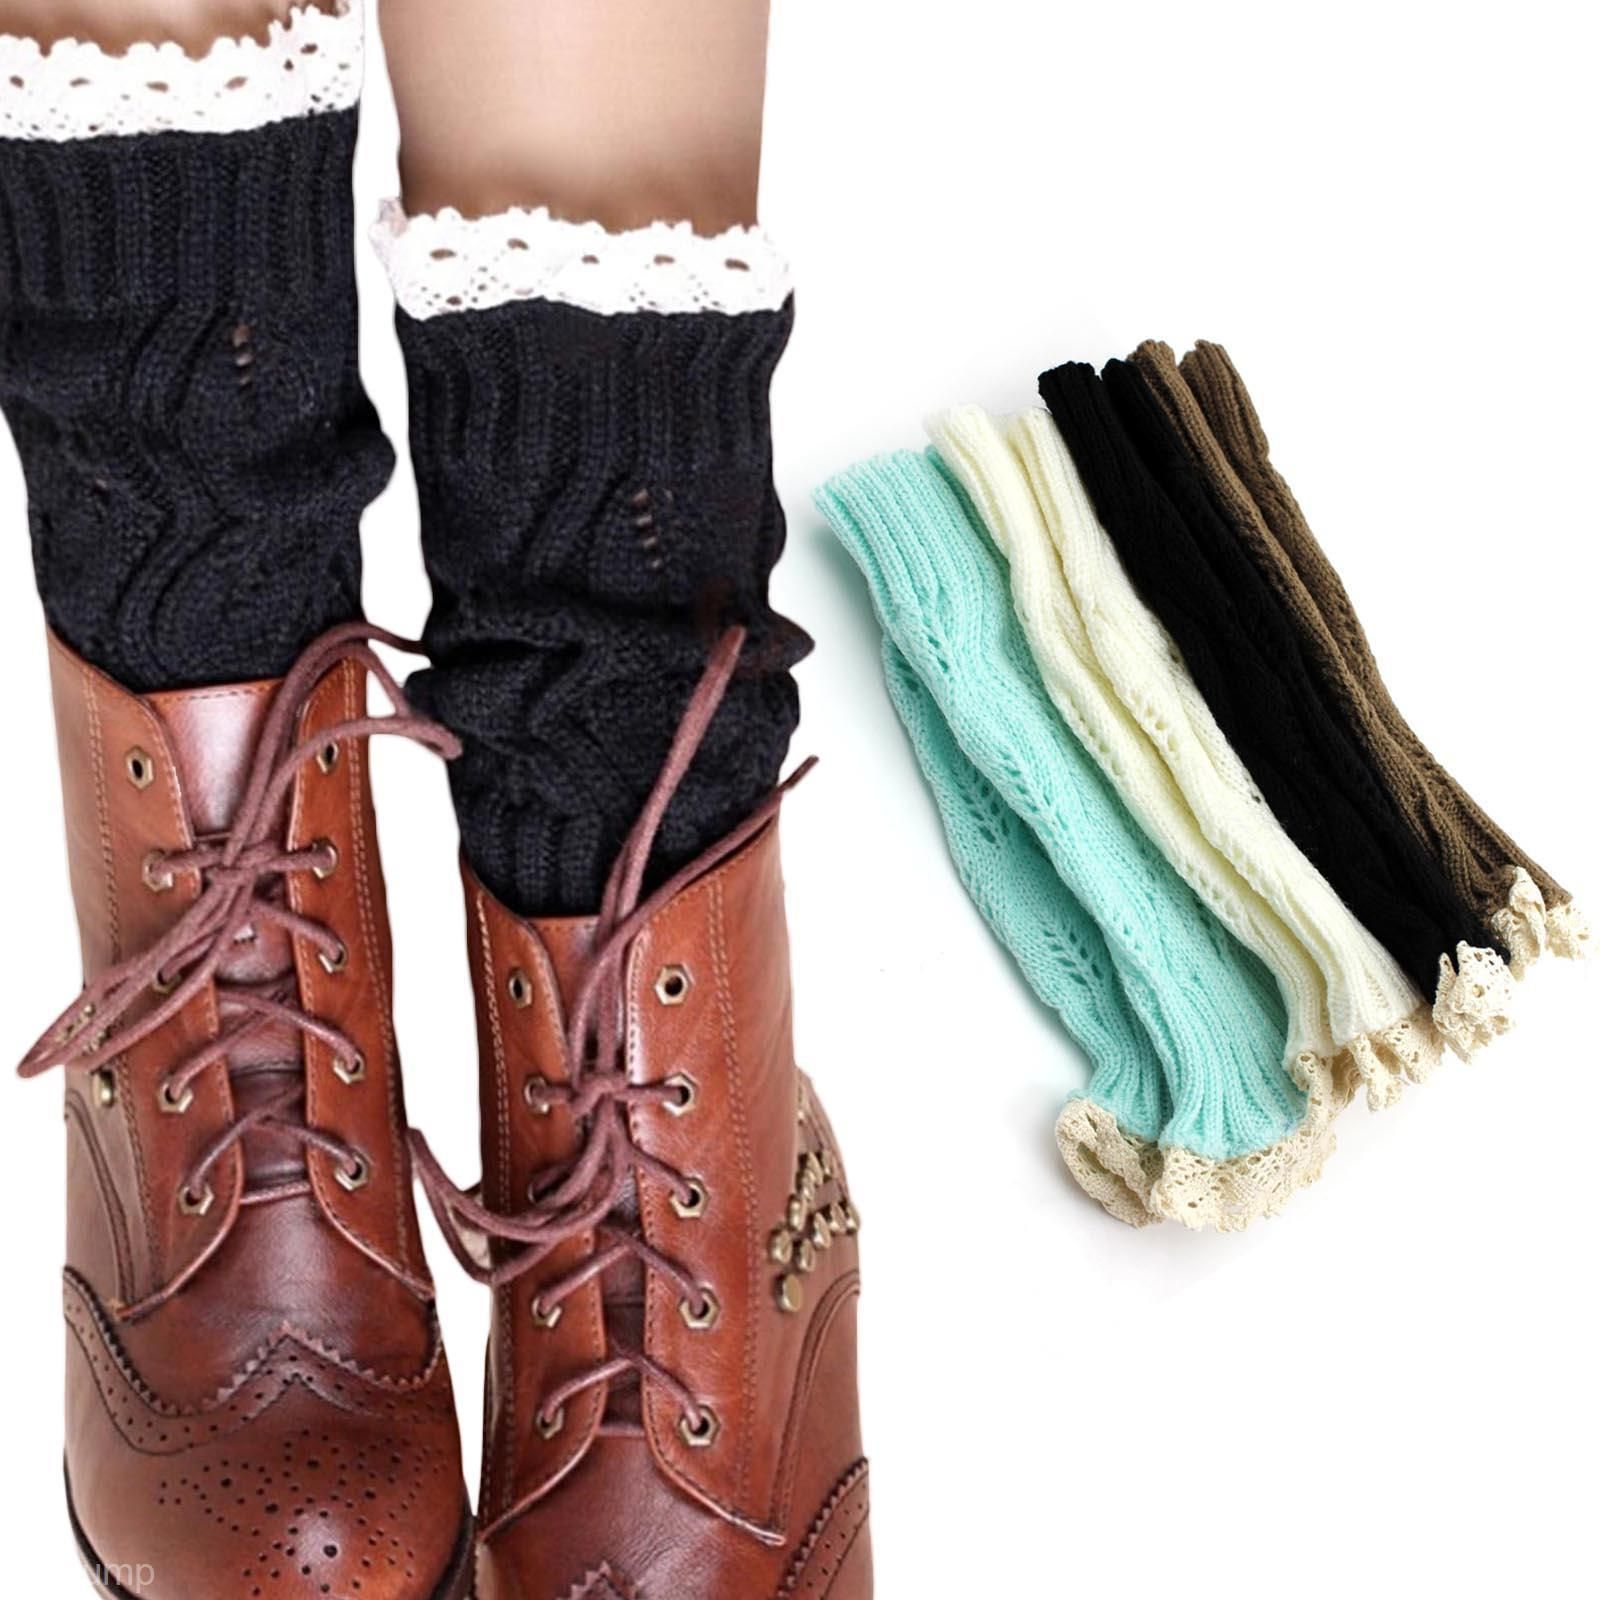 Women girl lace crochet short boot footless cuffs shoes cover leg hot fashion women girl knitted lace trim boot cuffs toppers leg warmers socks in clothing shoes accessories womens clothing hosiery socks bankloansurffo Choice Image